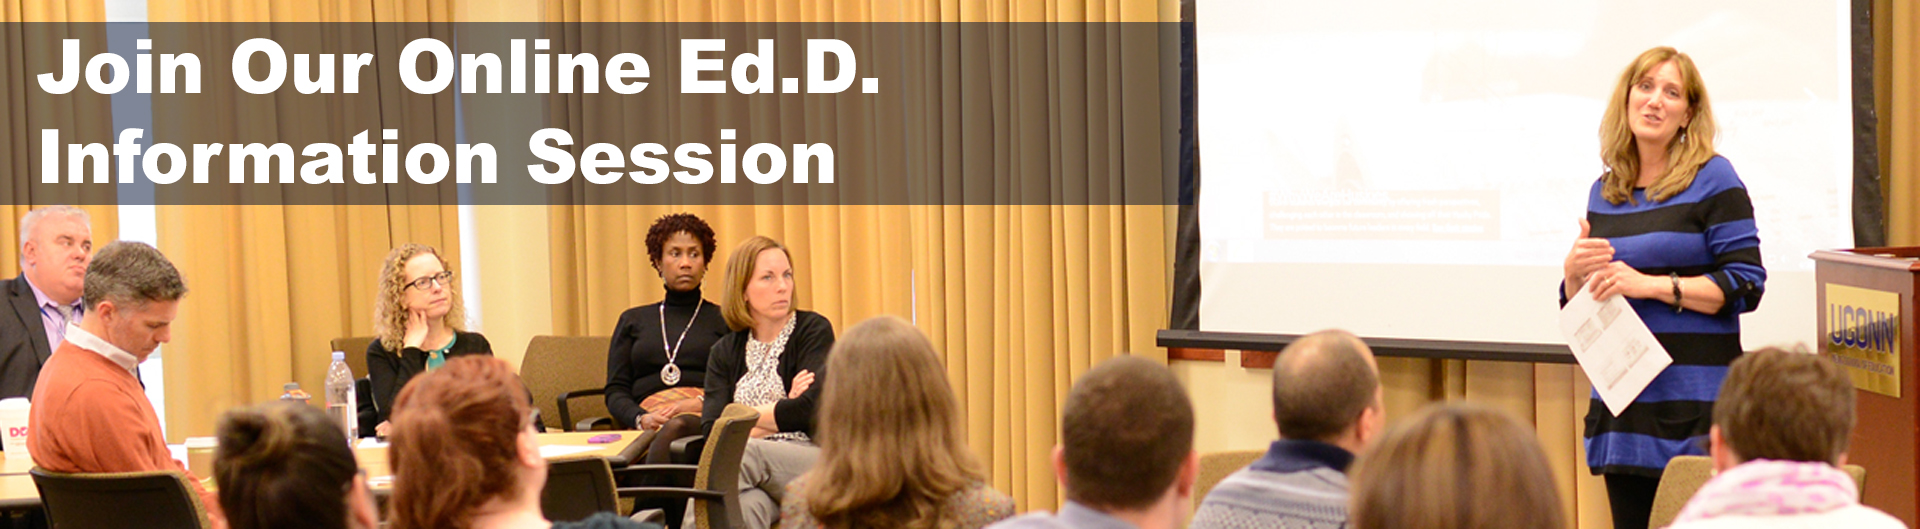 Join our online Ed.D. information session